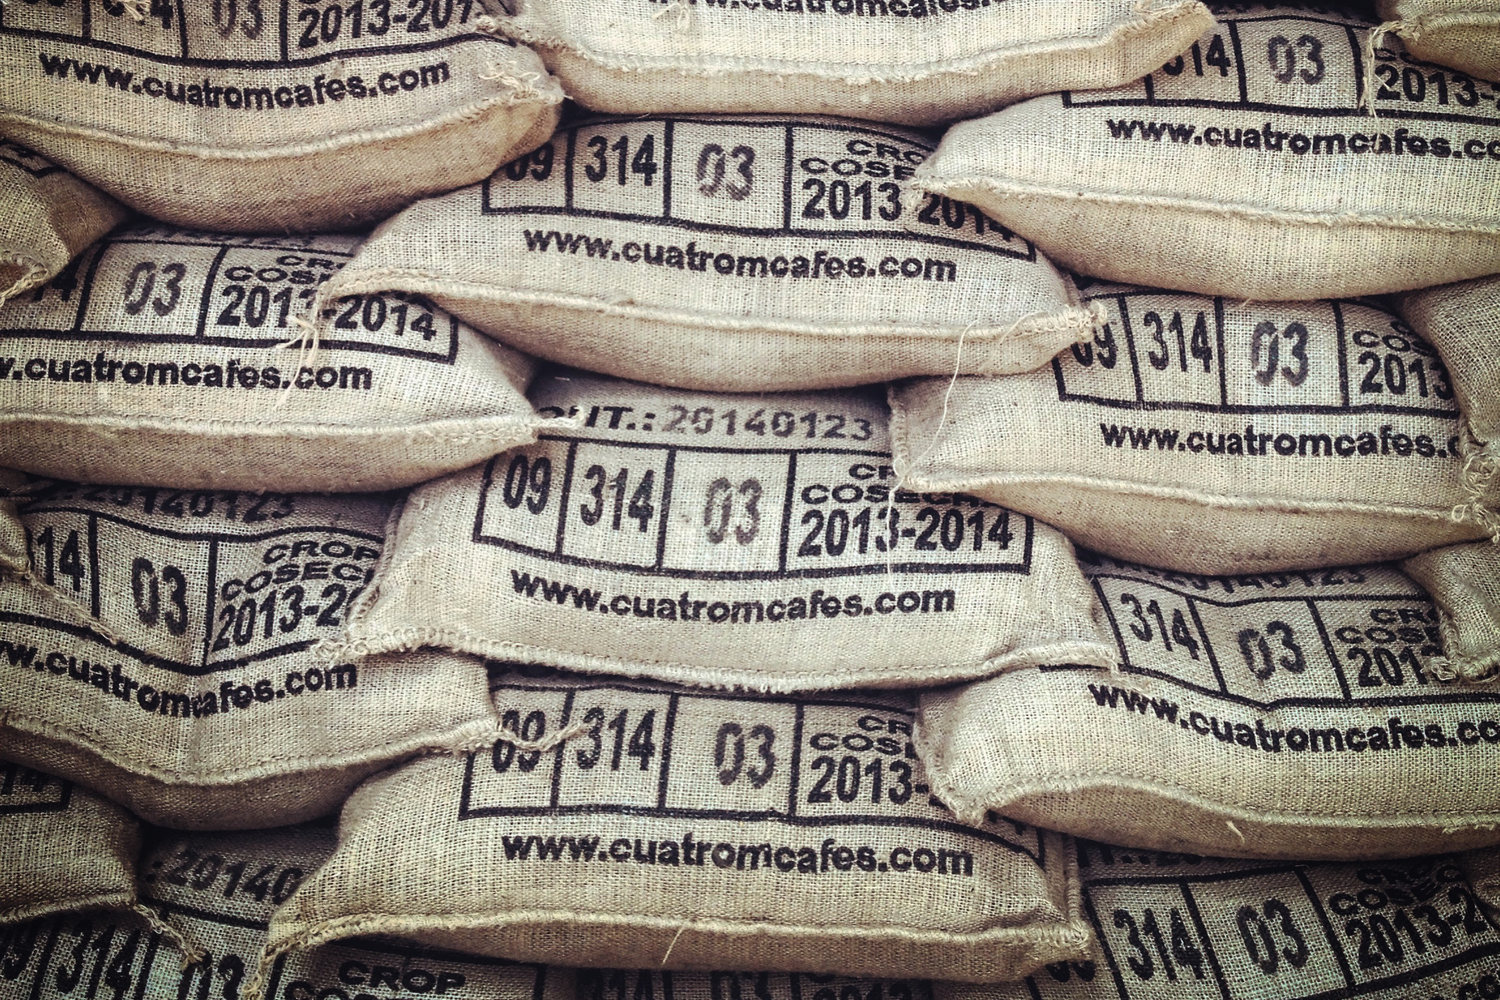 Sacs  Coffee is shipped in burlap sacs. For all of El Salvador, and most of Central America, each sac weighs 69 kg, or 150 pounds.